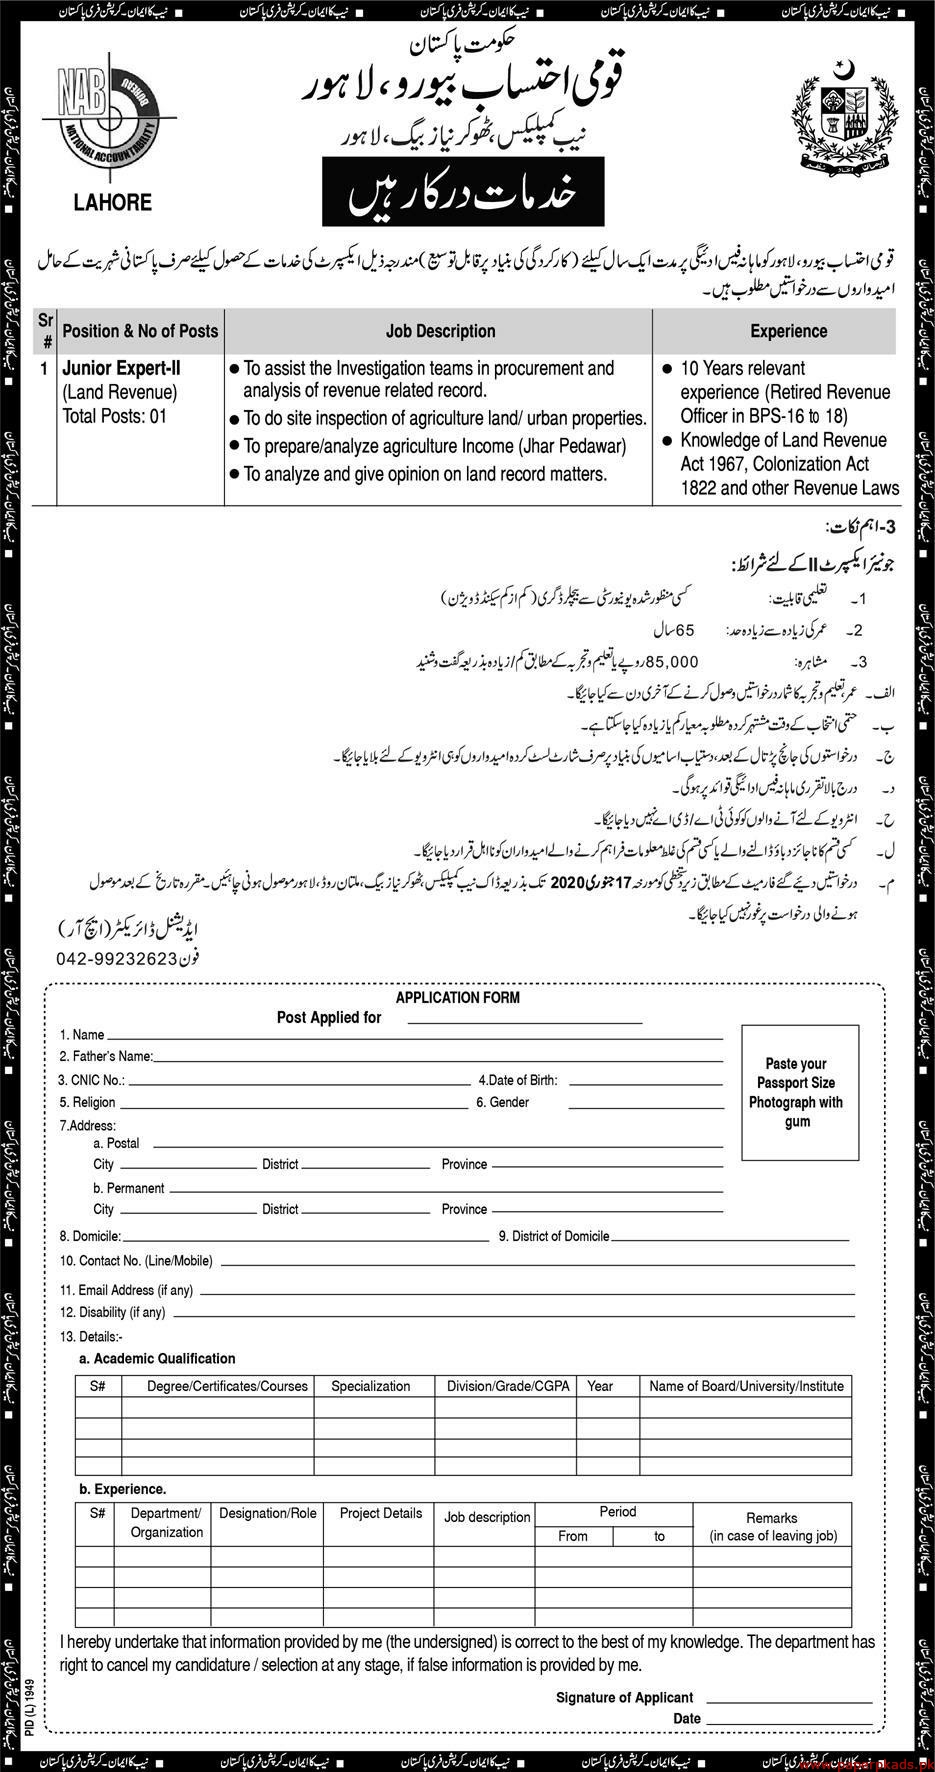 NAB Pakistan Jobs 2020 Latest